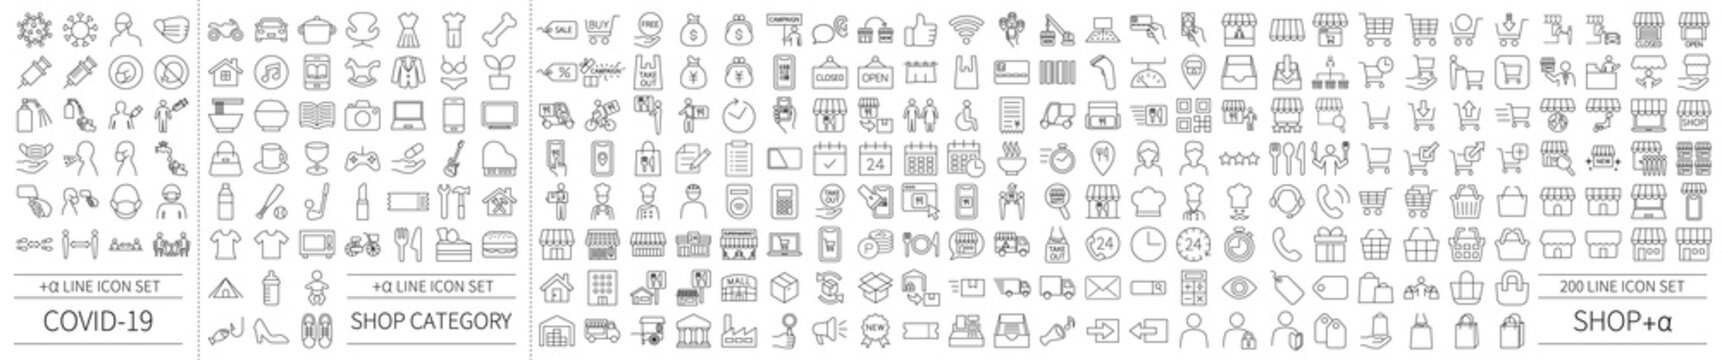 Black and white icon set 200 related to shops and EC and infectious disease control, product category icon set